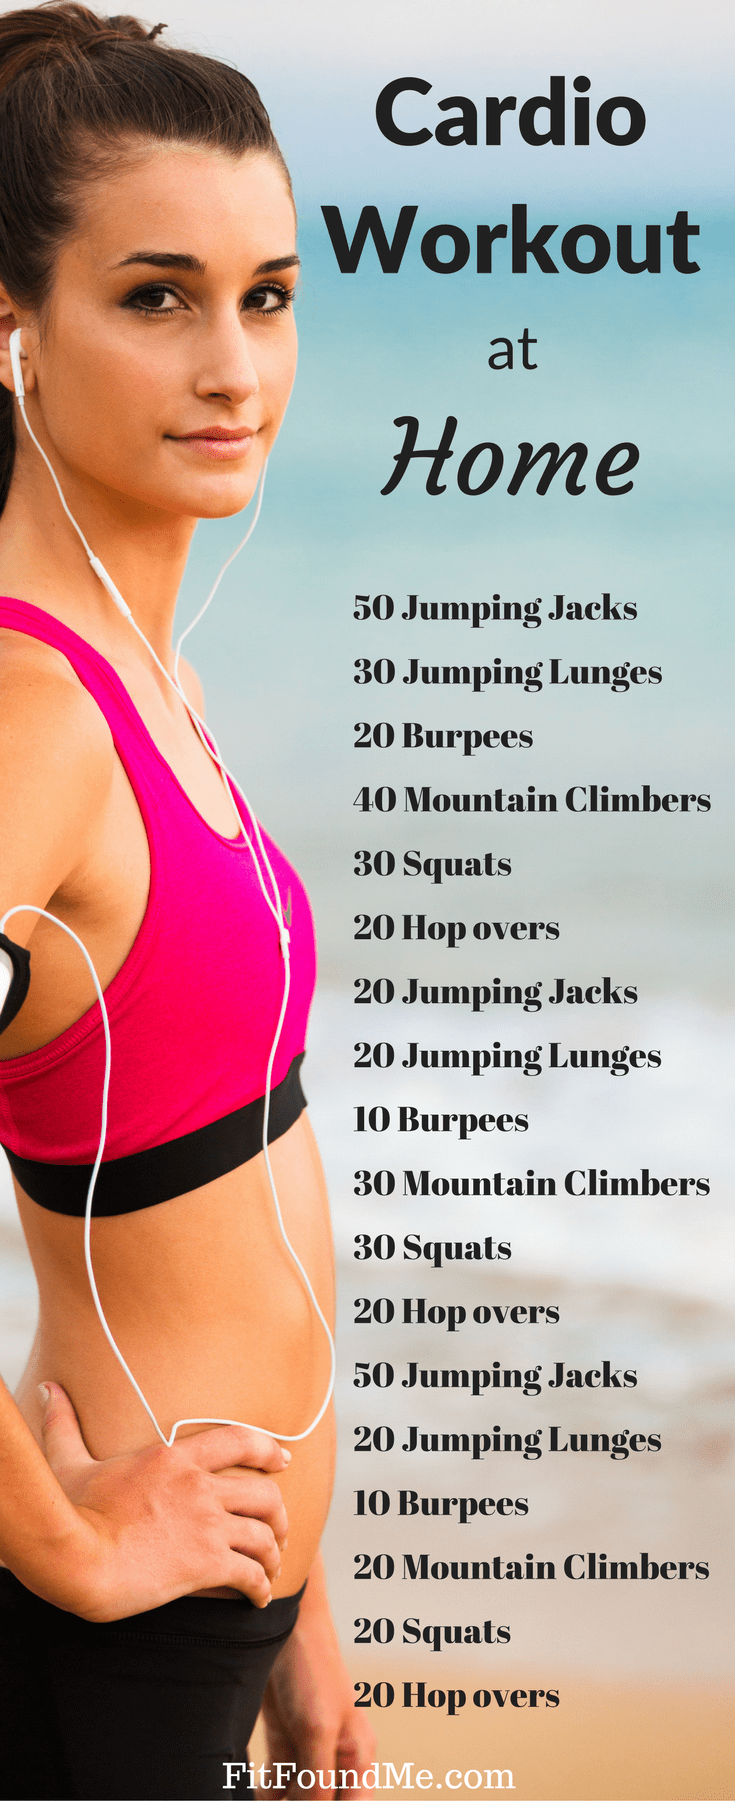 No excuses allowed today. This cardio workout for women is where the fat burn happens. Calories are waiting for you to burn them away with this 30 minute indoor no equipment cardio workout. Fitness for women over 40 should be a priority and this workout will help you fit it into your busy schedule.